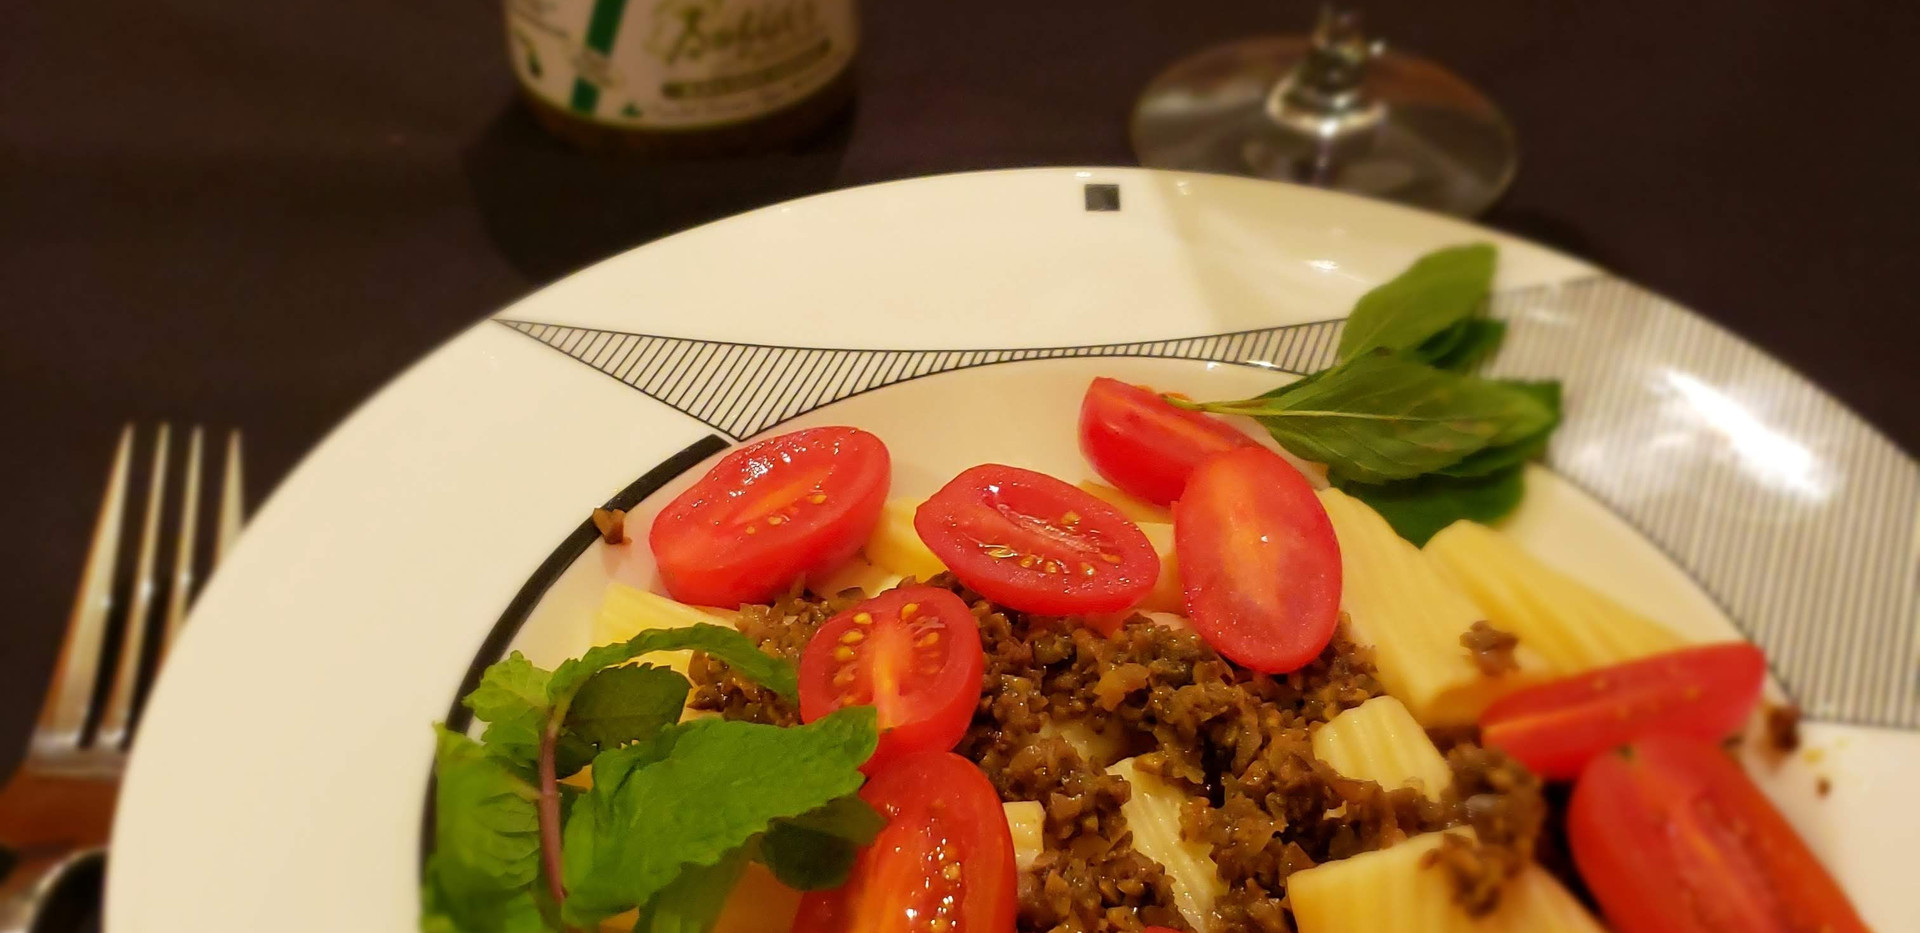 Olive Tapenade on pasta & cherry tomato